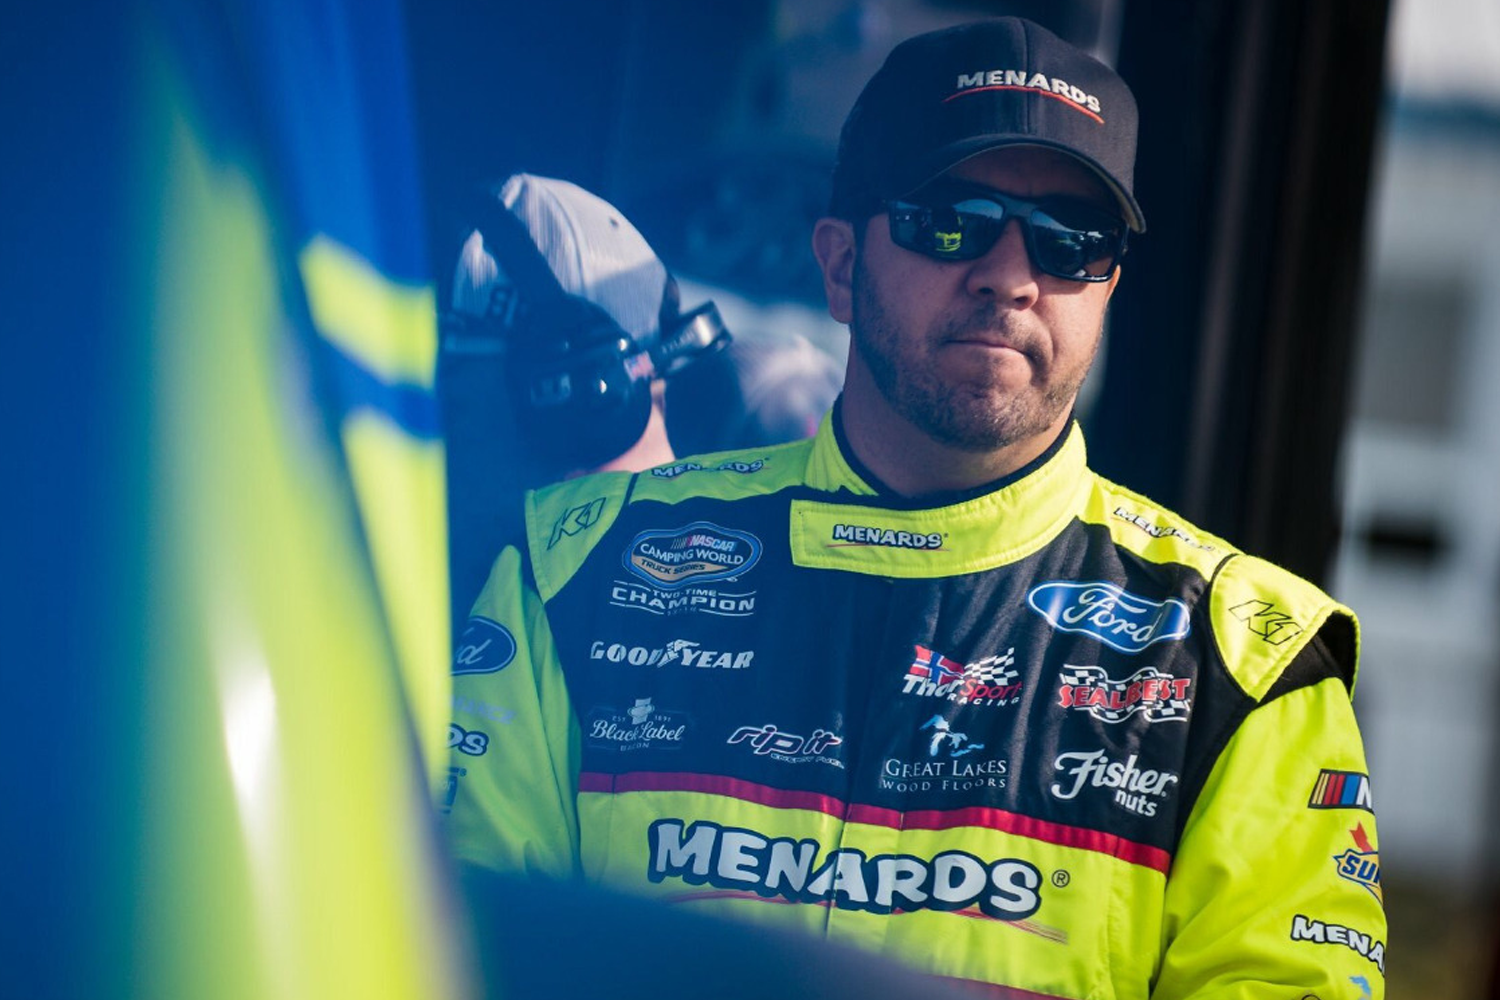 Twitter:  @matt_crafton  Instagram:  @matt_crafton  Facebook:  88mattcrafton  Youtube:  @ThorSportRacing